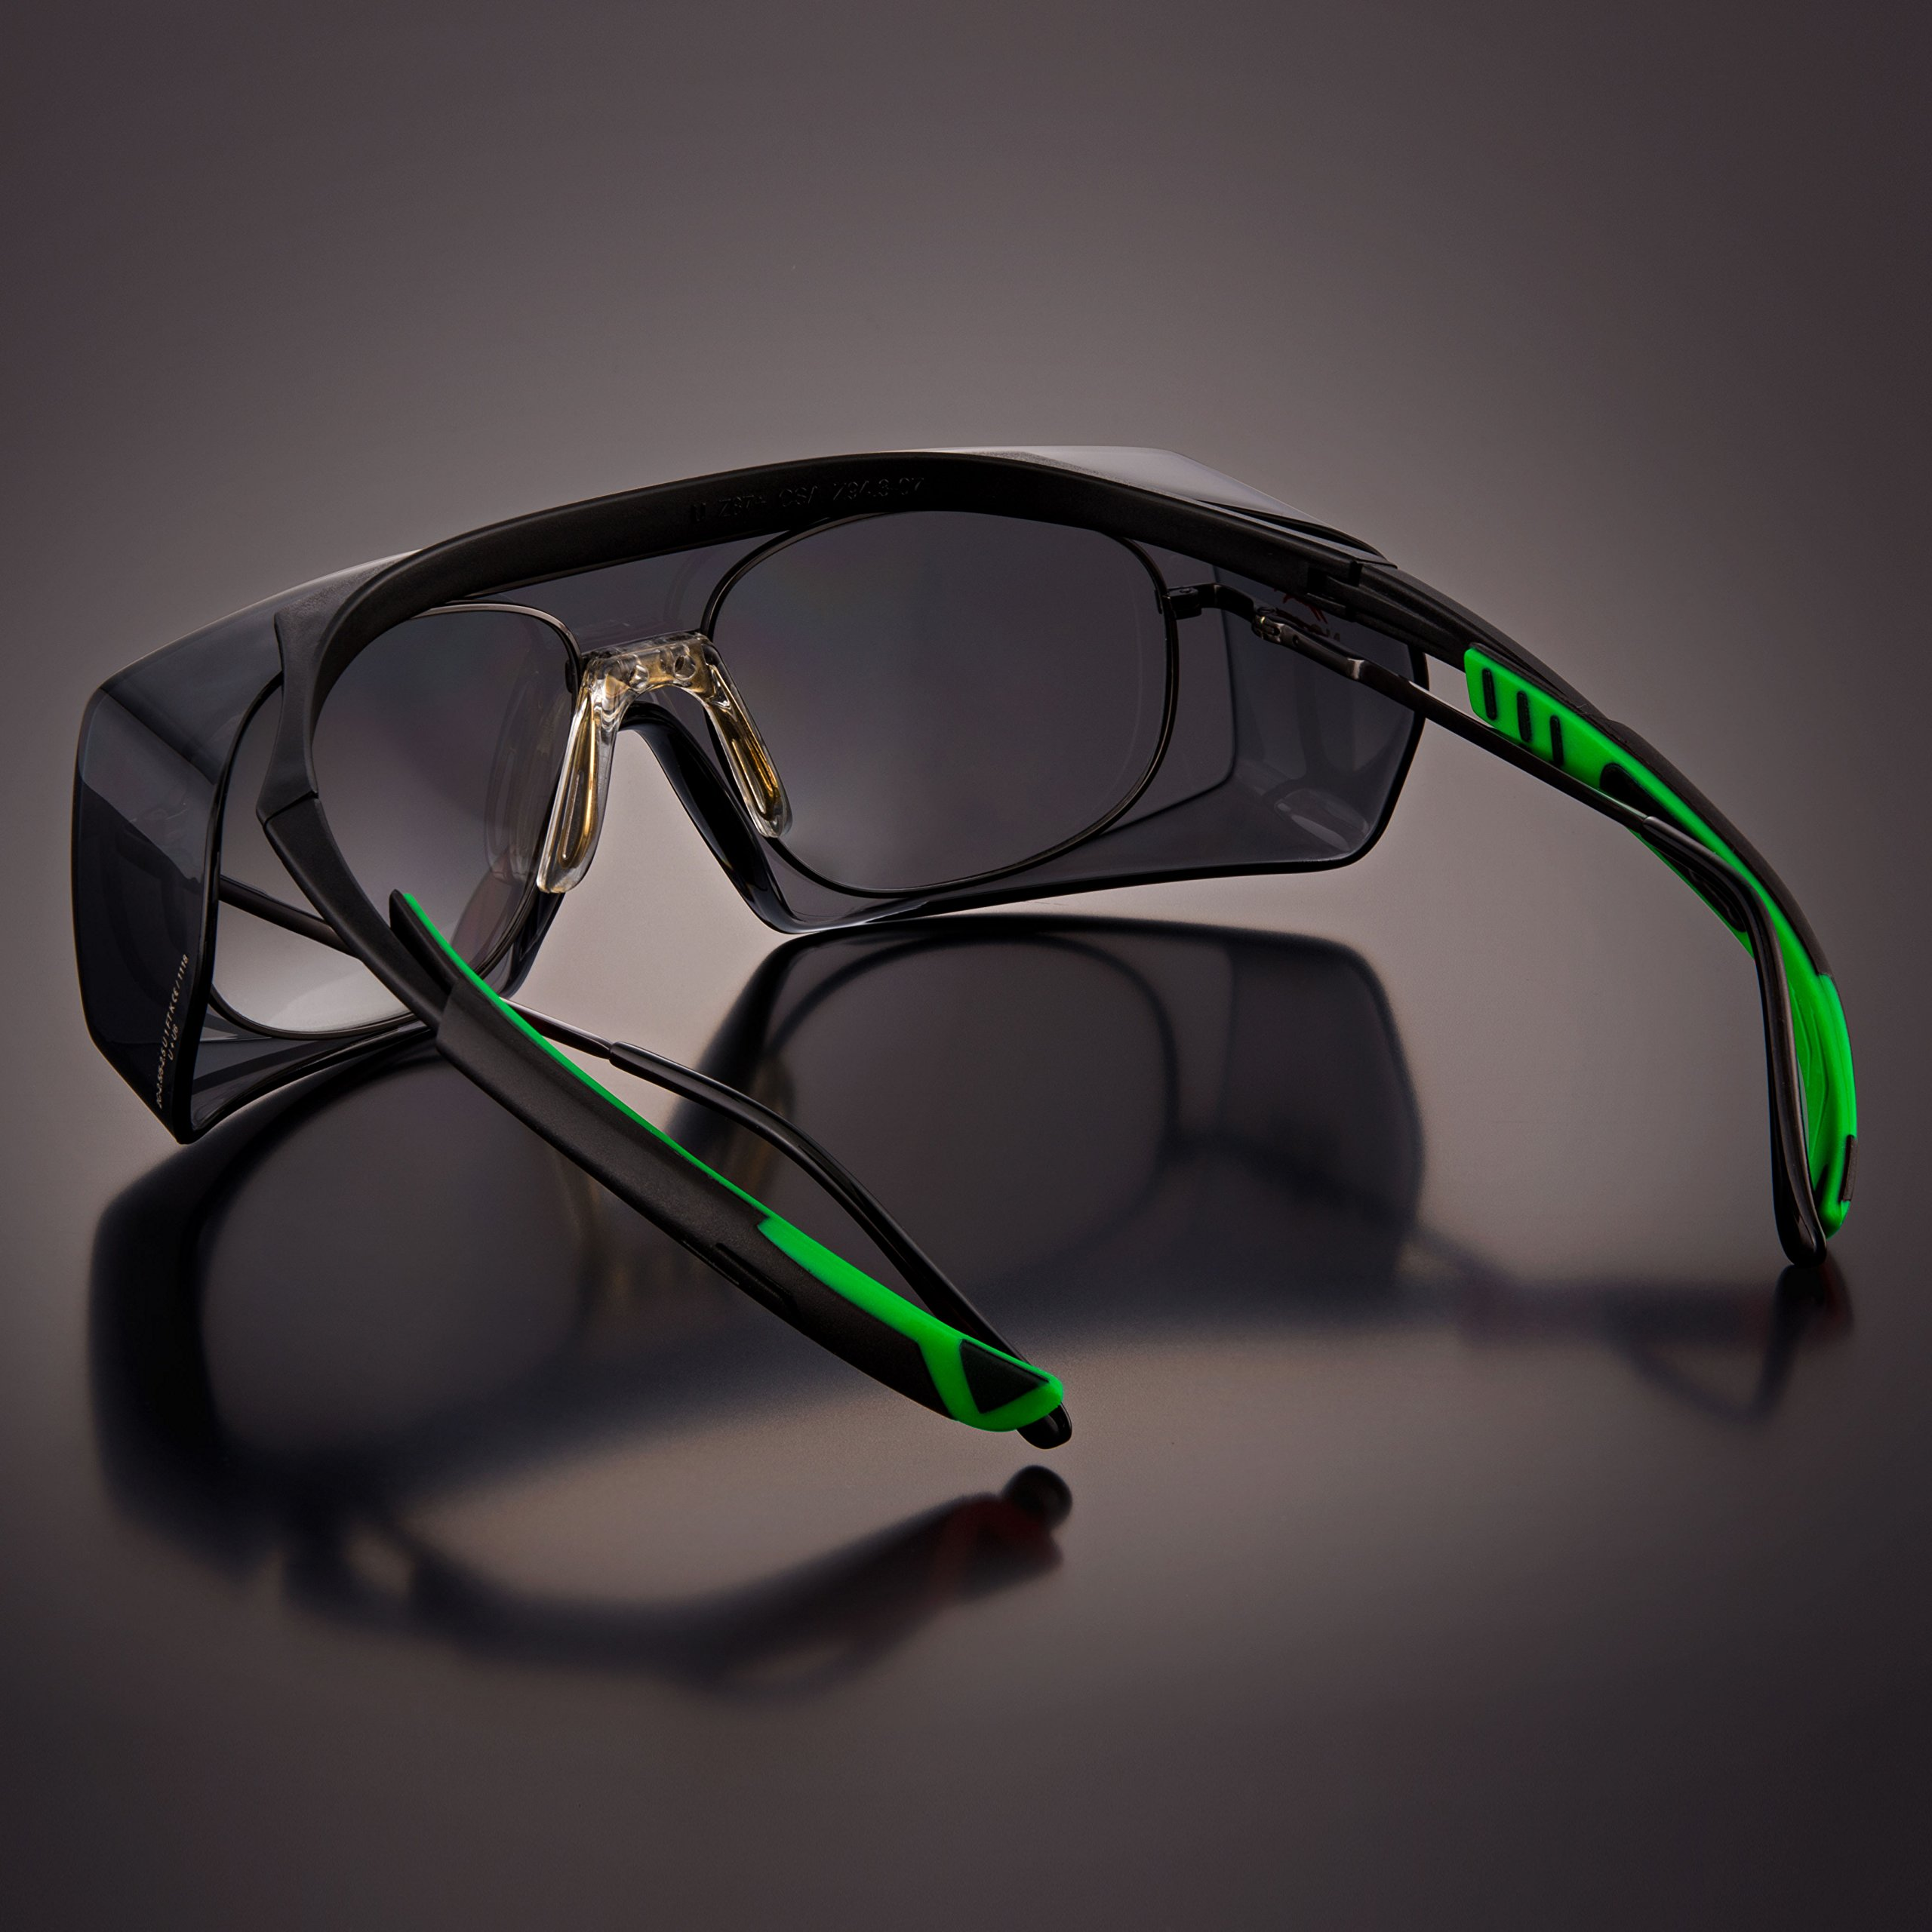 NoCry Tinted Over-Spec Safety Glasses - with Anti-Scratch Wraparound Lenses, Adjustable Arms, and UV400 Protection. ANSI Z87.1 & OSHA Certified by NoCry (Image #8)